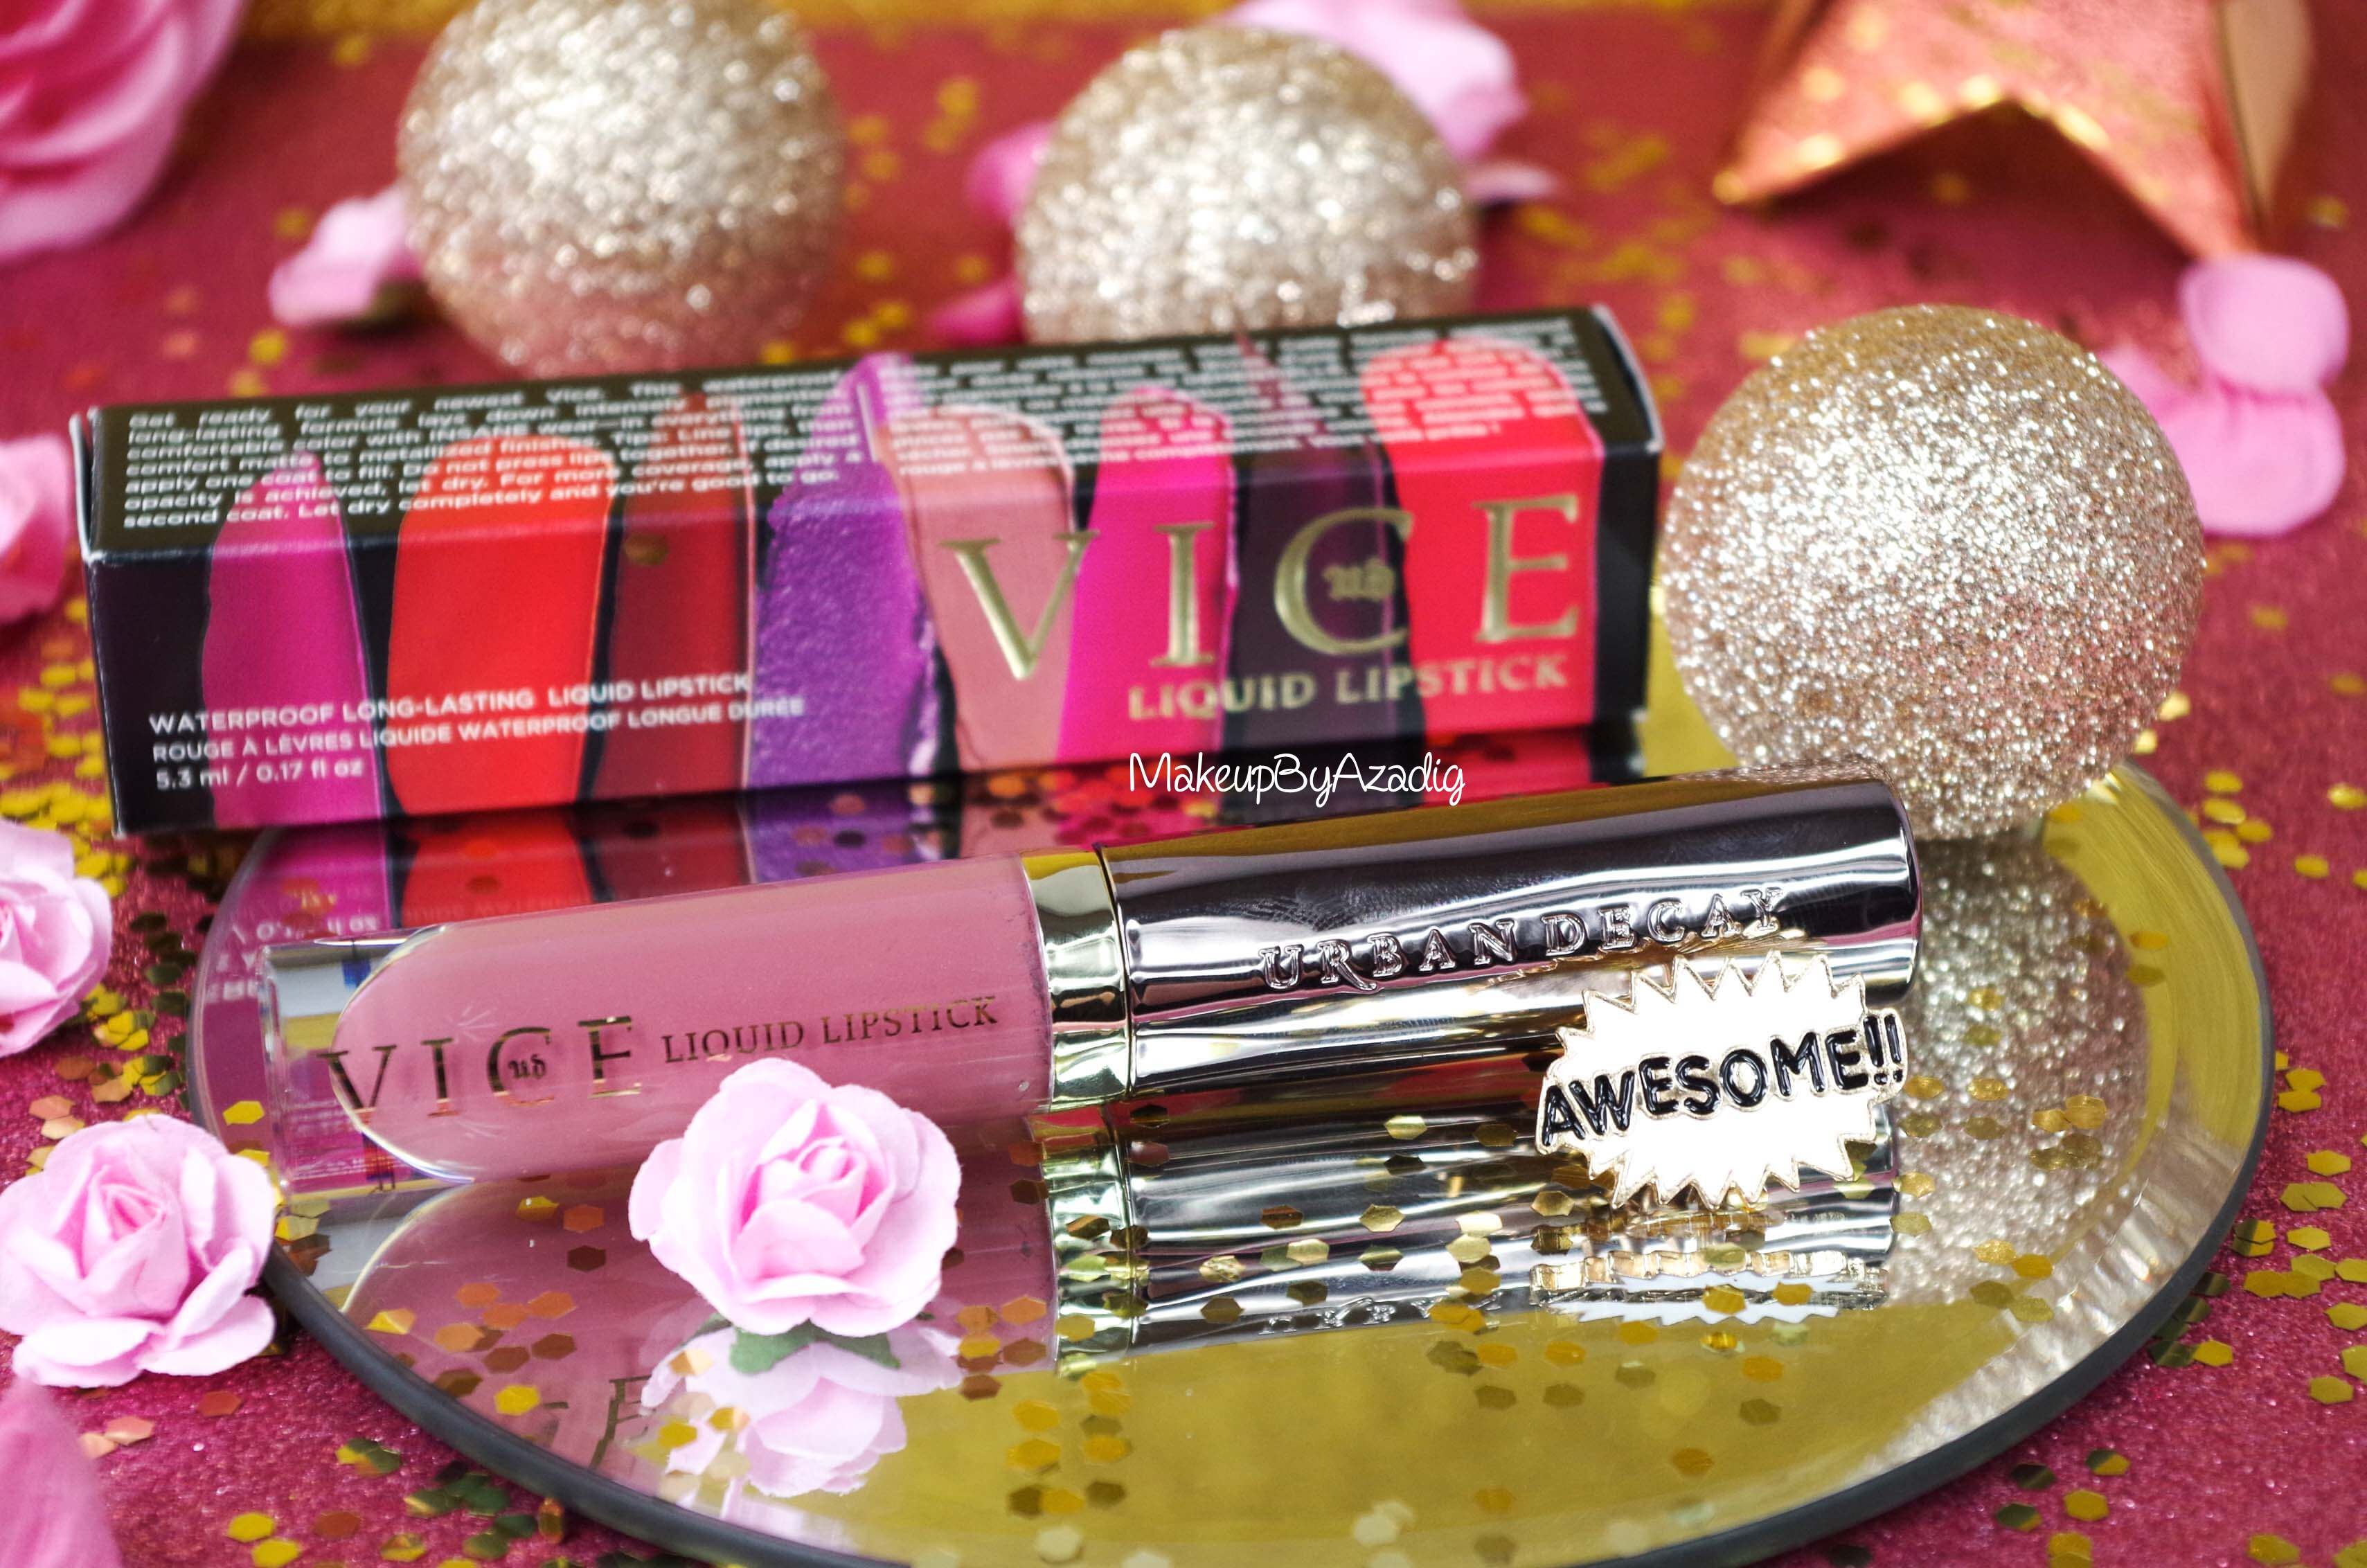 miniature-revue-review-vice-liquid-lipstock-urban-decay-backtalk-avis-swatch-prix-rouge-levres-sephora-makeupbyazadig